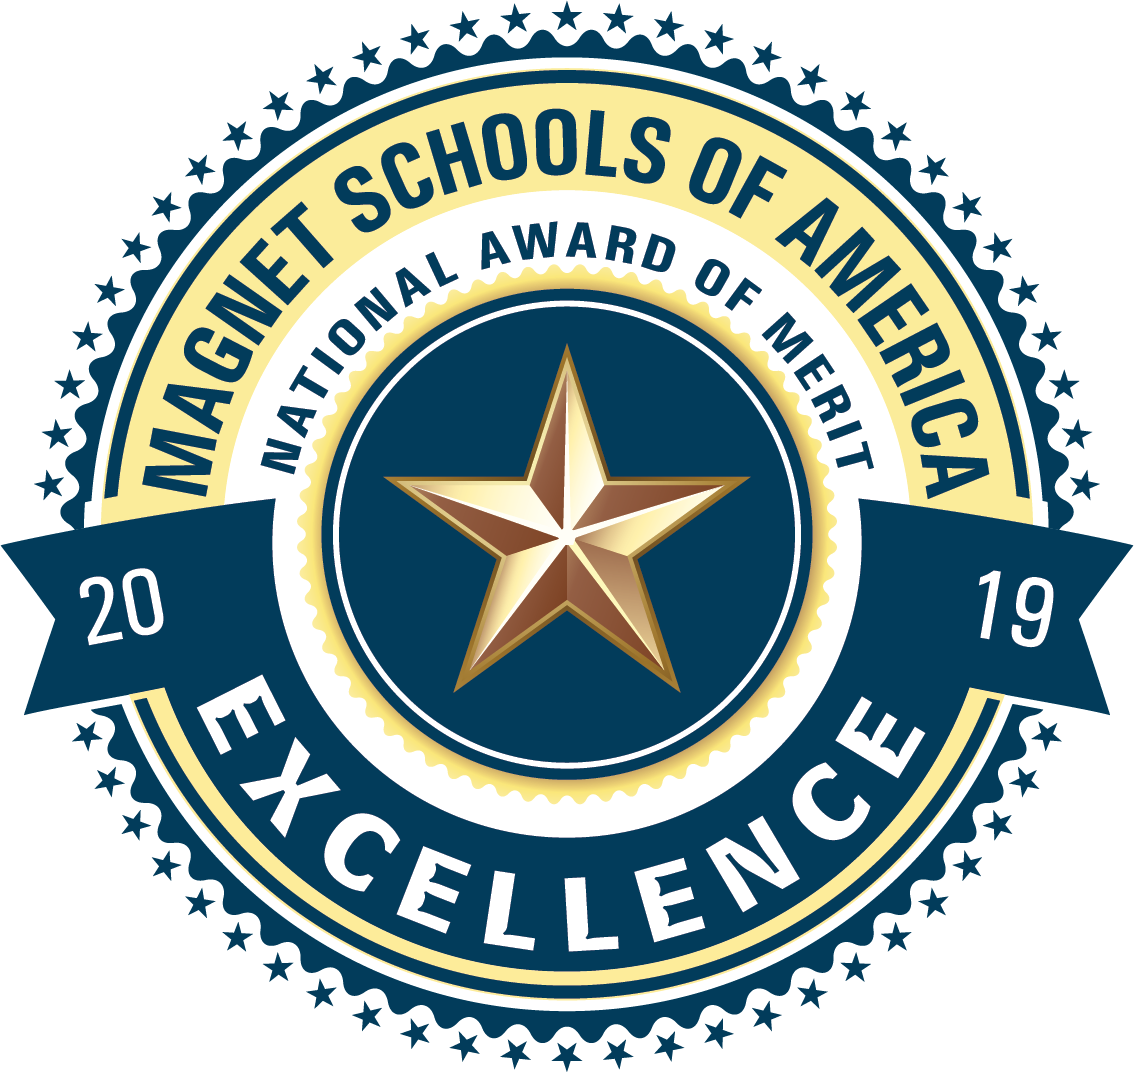 Magnet Schools of America National Award of Merit for 2019